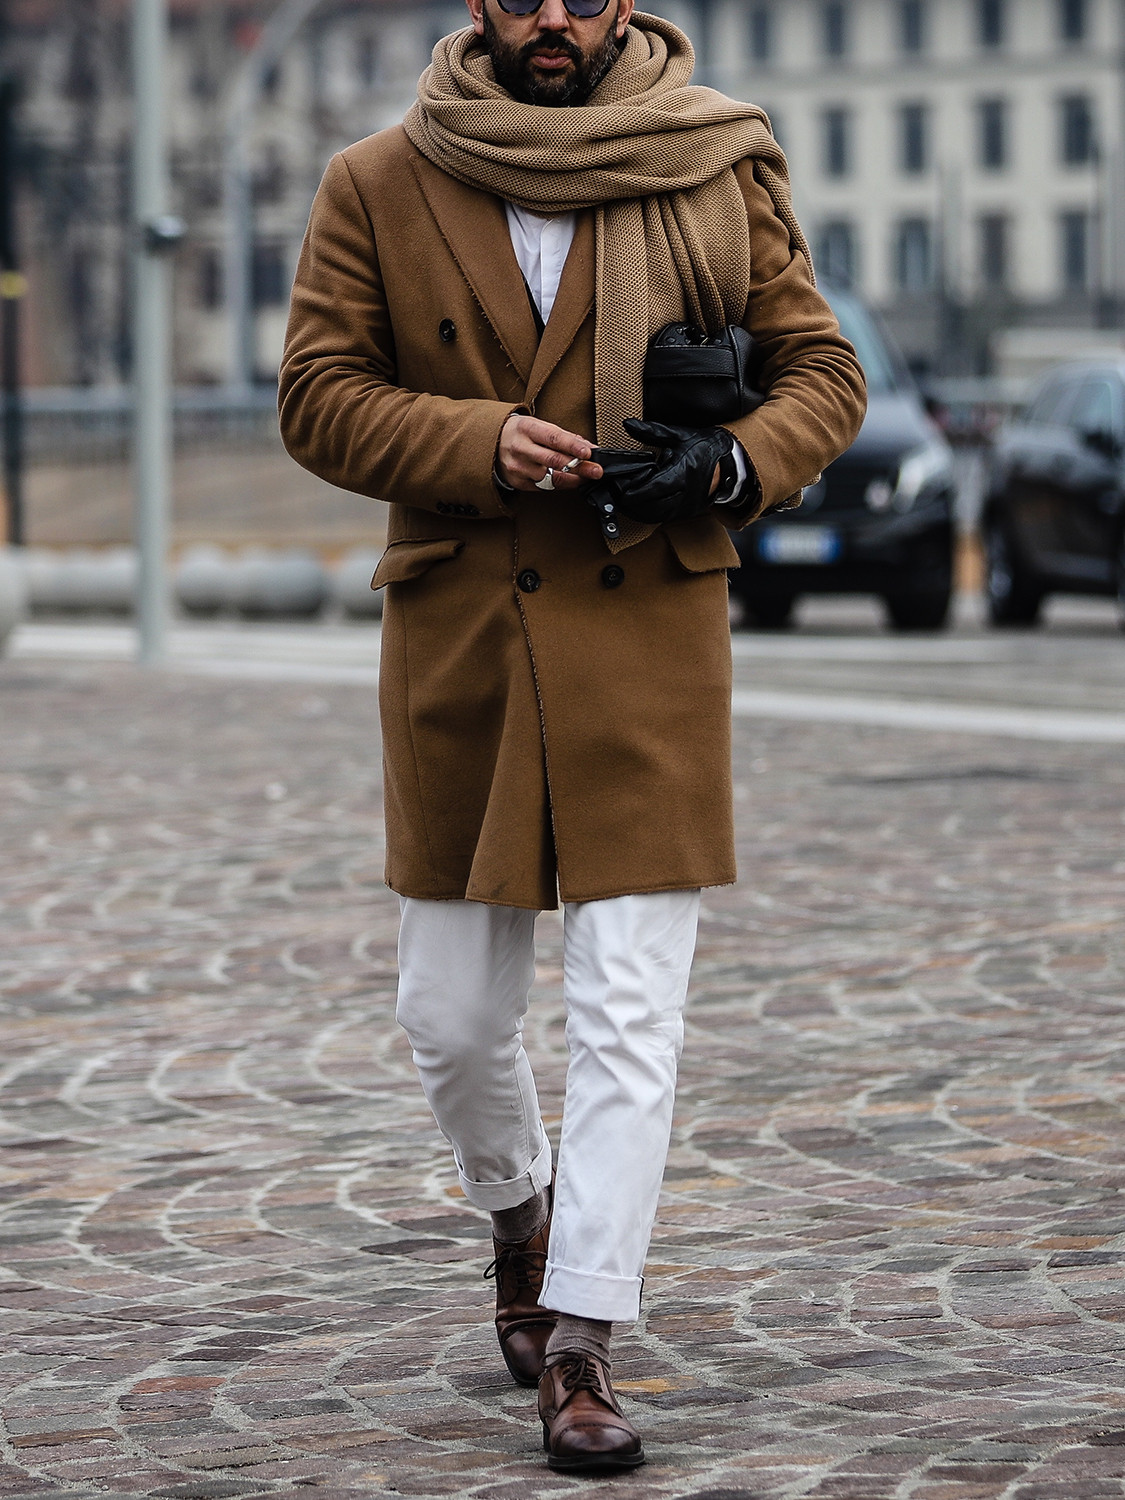 Men's outfit idea for 2021 with camel coat, white casual shirt, white chinos, oxford / derby shoes. Suitable for autumn and winter.